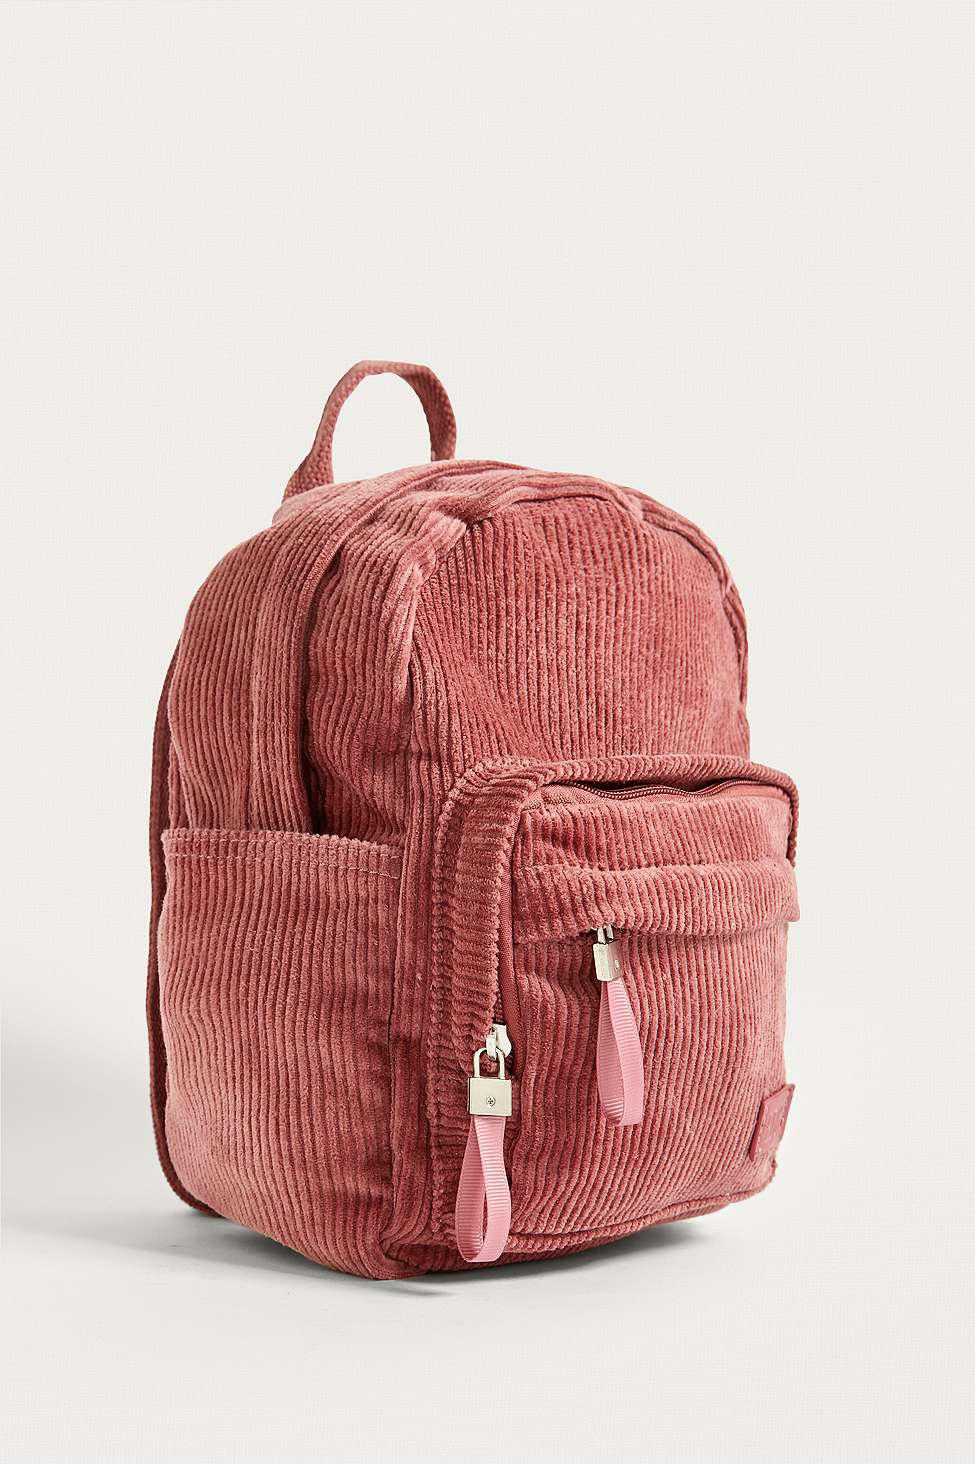 093f91f35fff Urban Outfitters Bdg Classic Canvas Backpack- Fenix Toulouse Handball